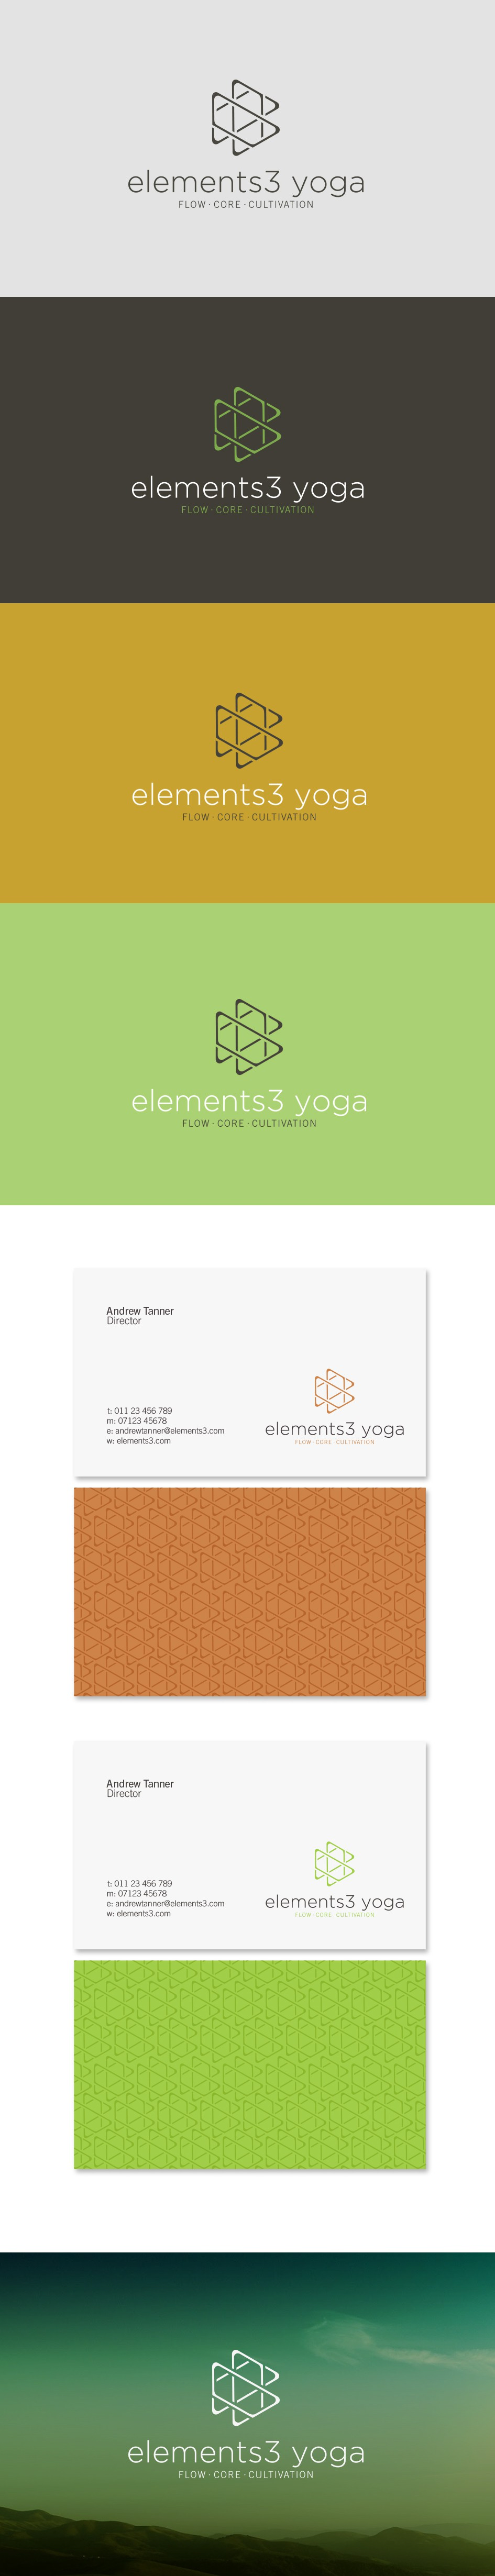 Create a cool logo for Elements3 Yoga